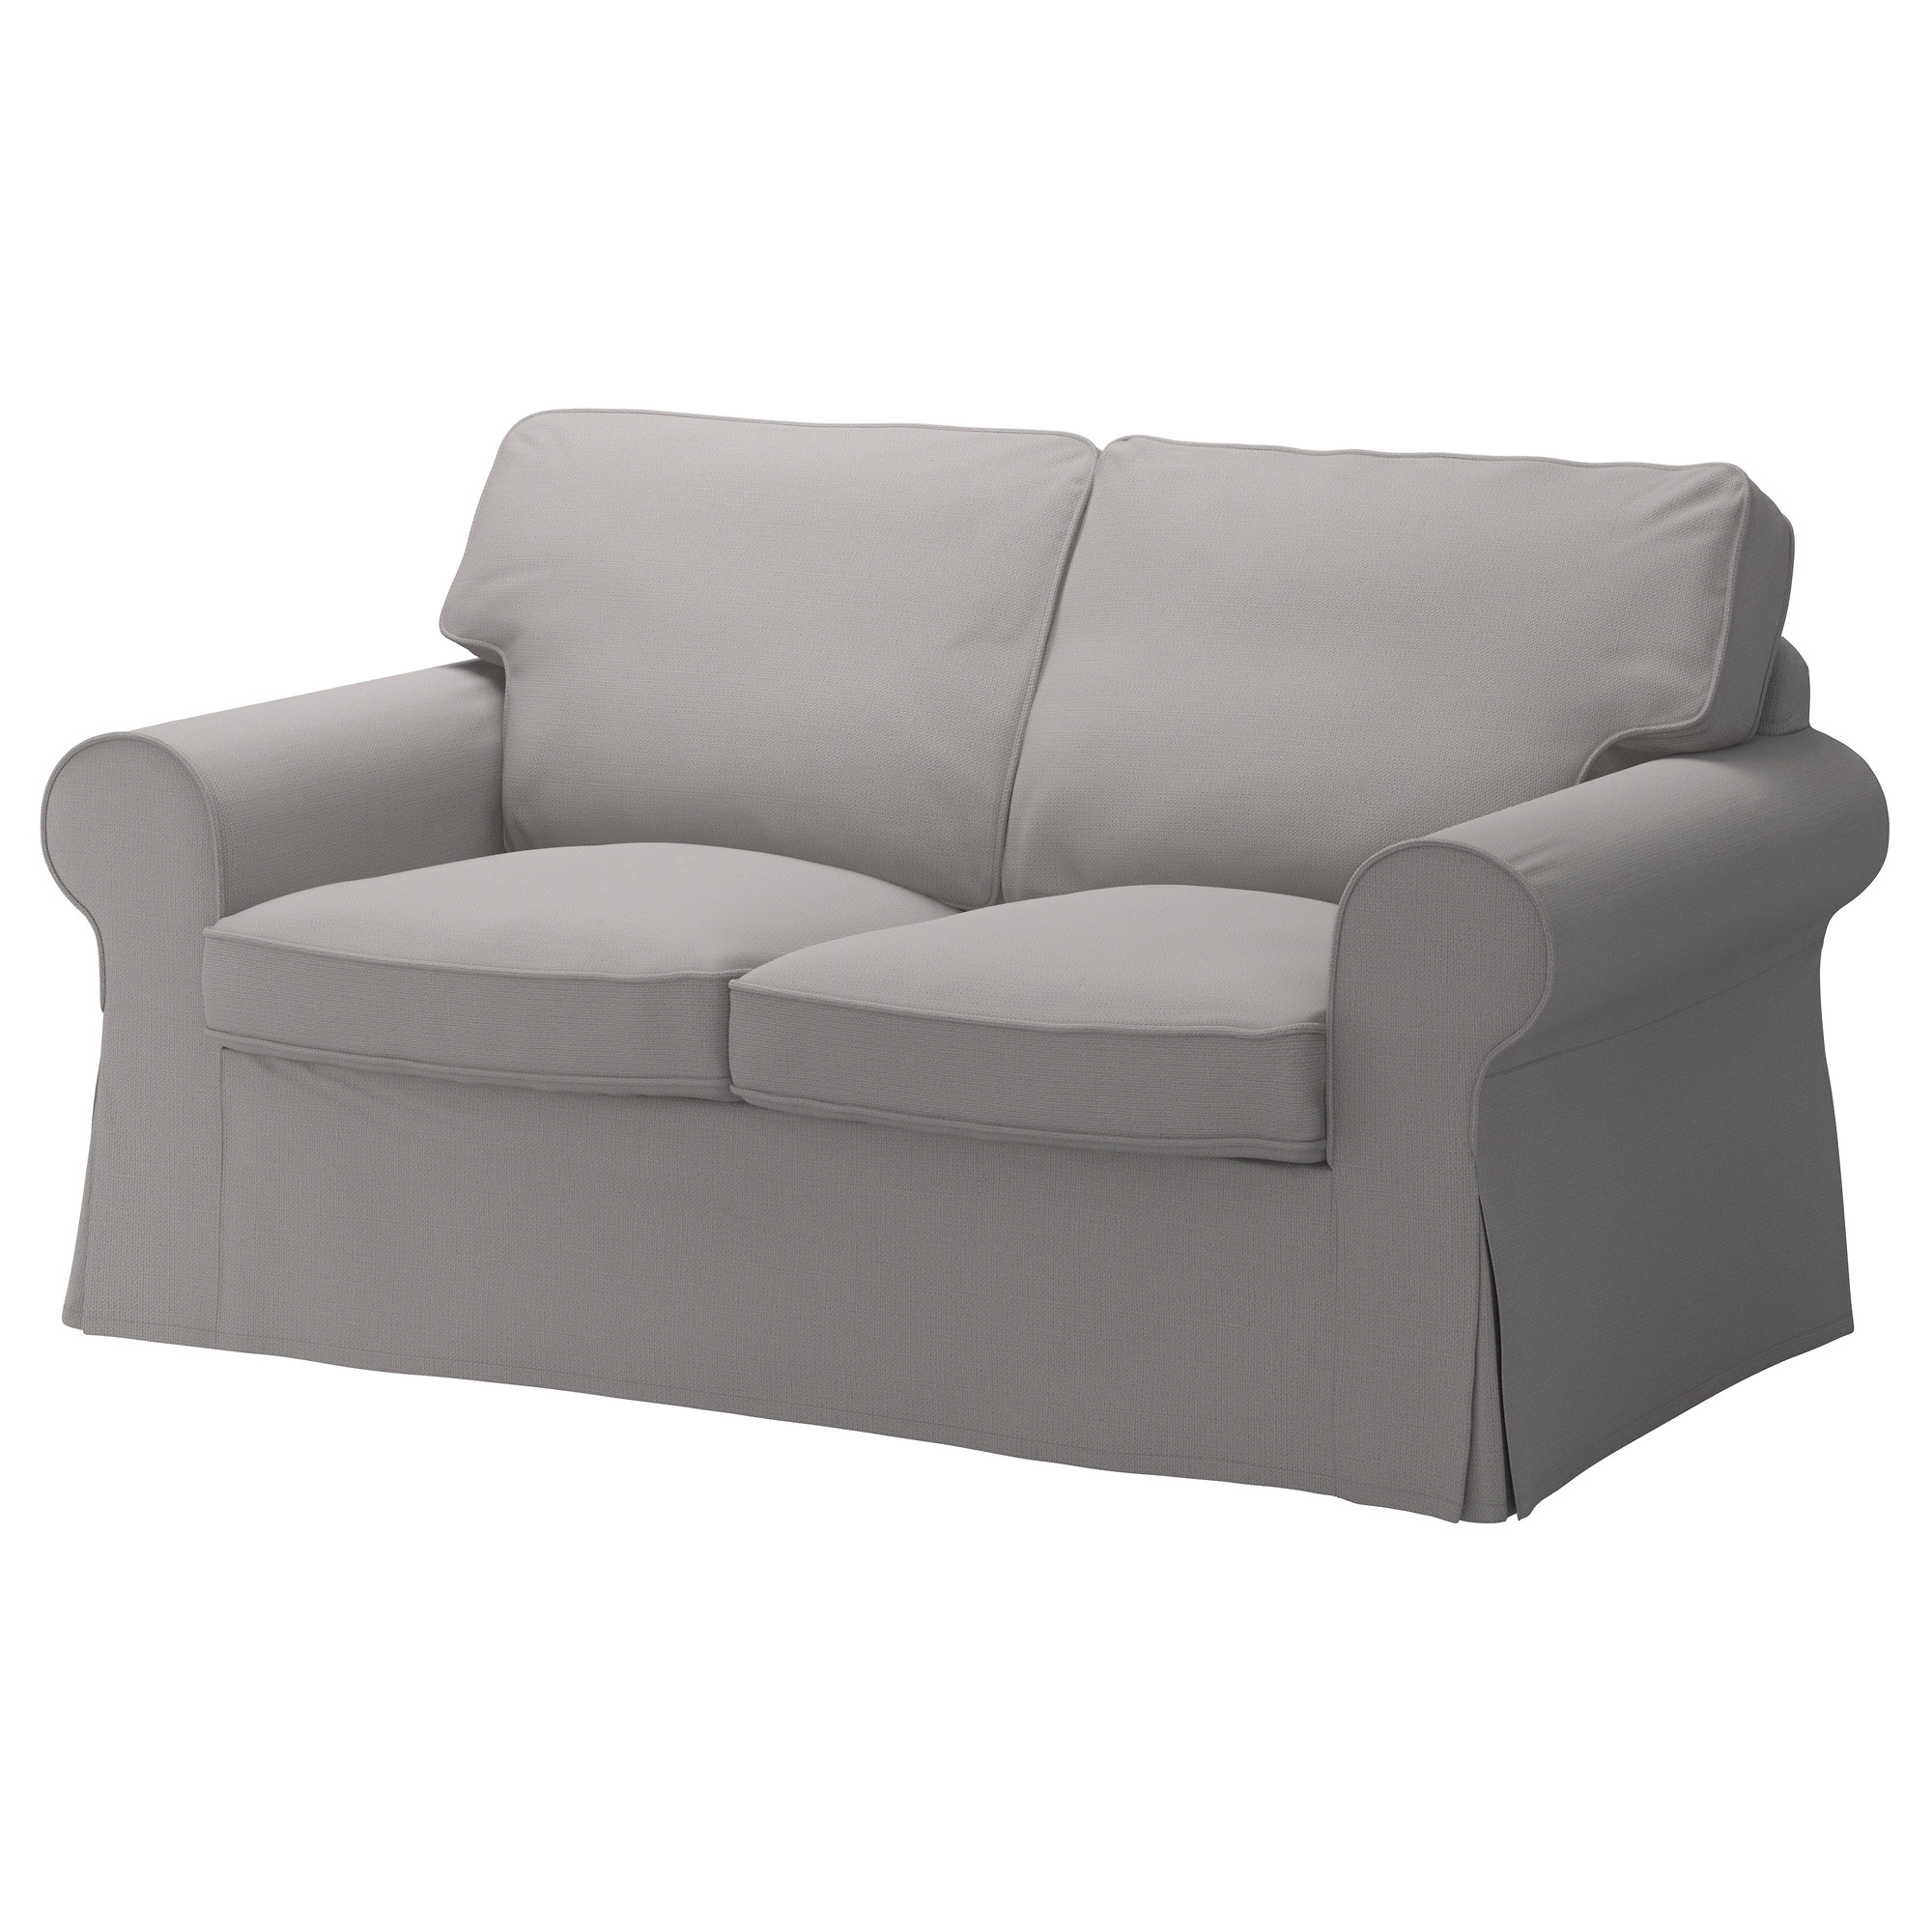 Canap ektorp 3 places convertible occasion univers canap - Convertible 2 places ikea ...